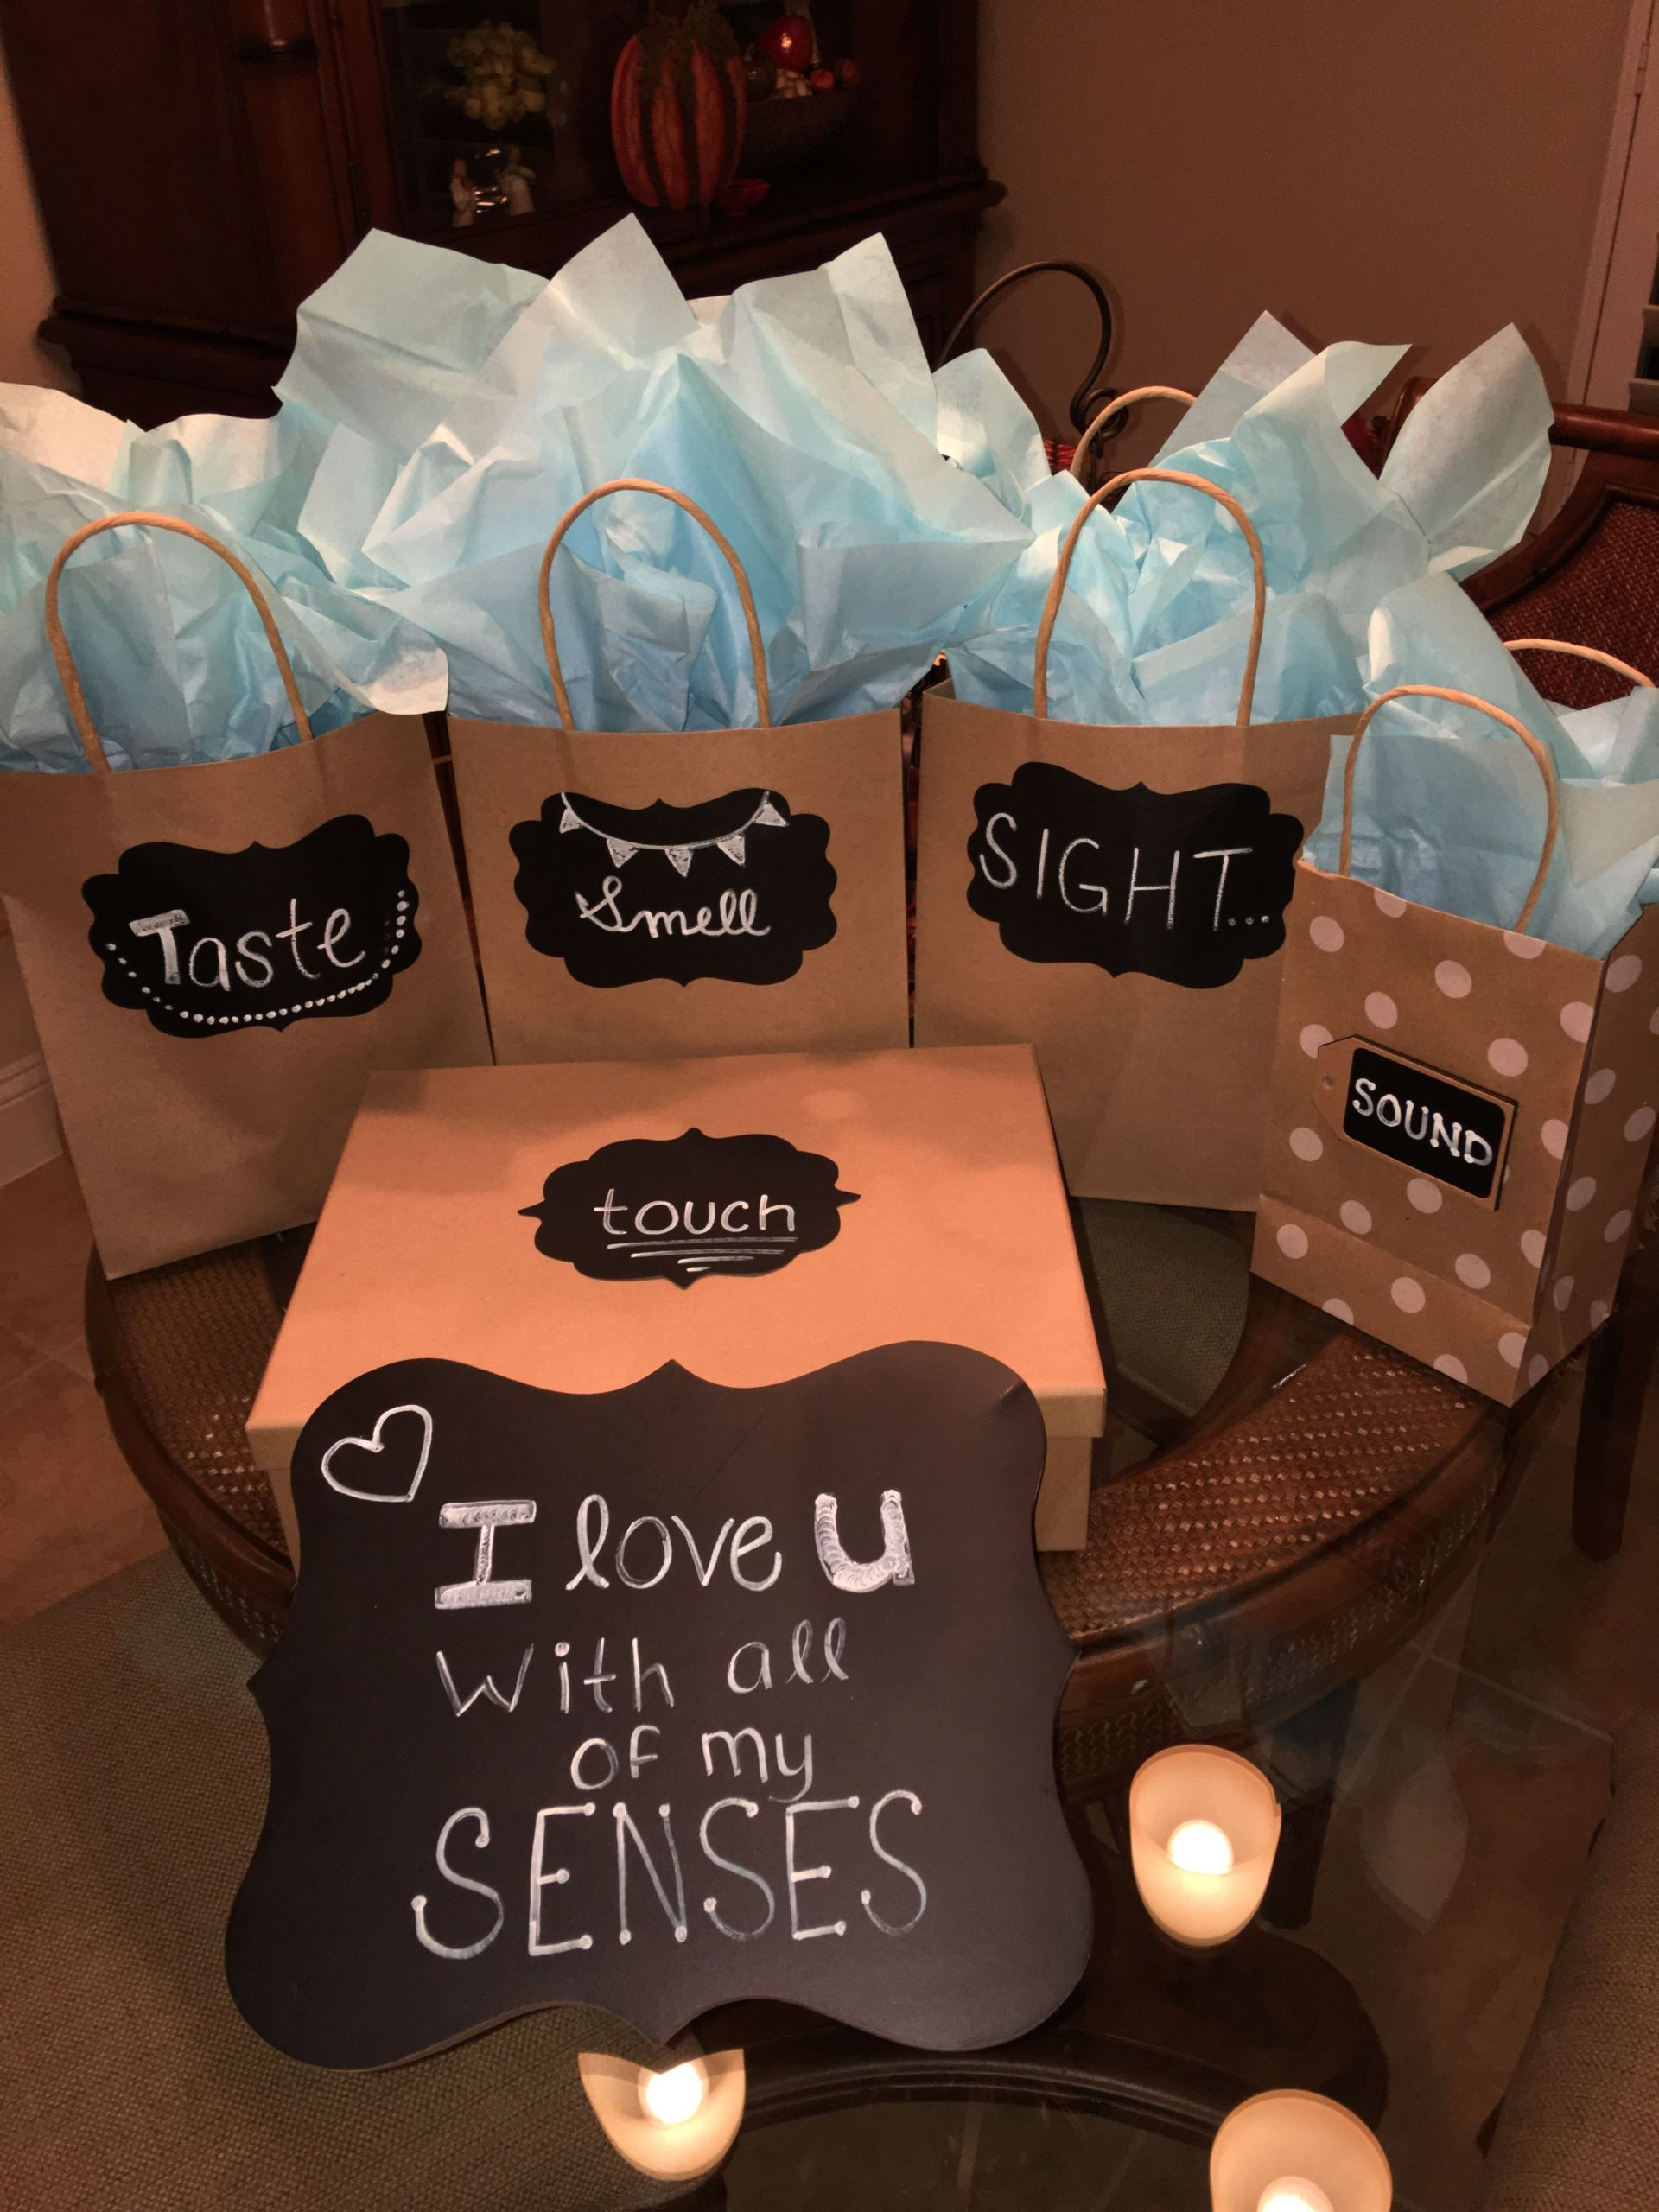 Free Gift Ideas For Boyfriend  I love you with all of my senses my version for my